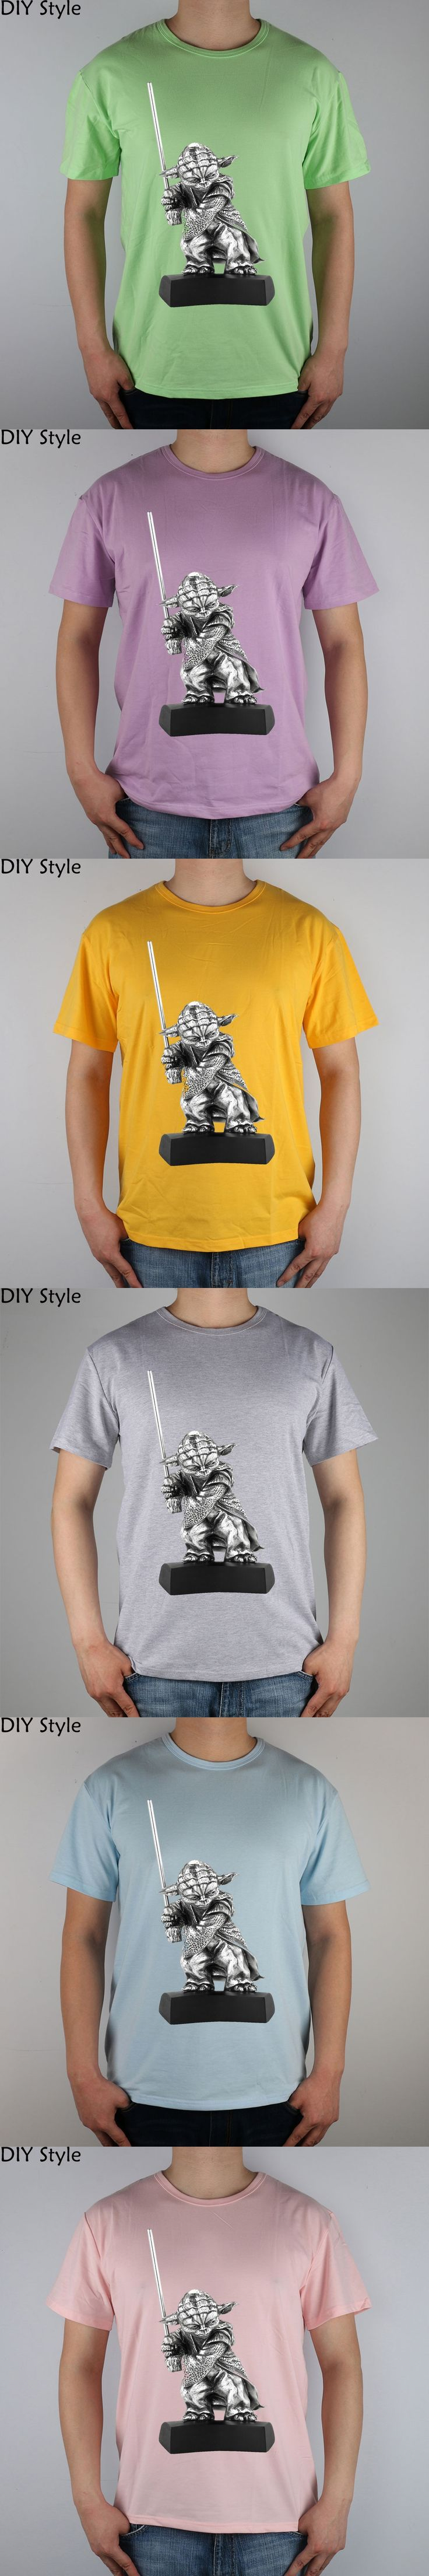 Royal Selangor Star Wars Yoda Figurine t-shirt Top Lycra Cotton Men T Shirt New Diy Style